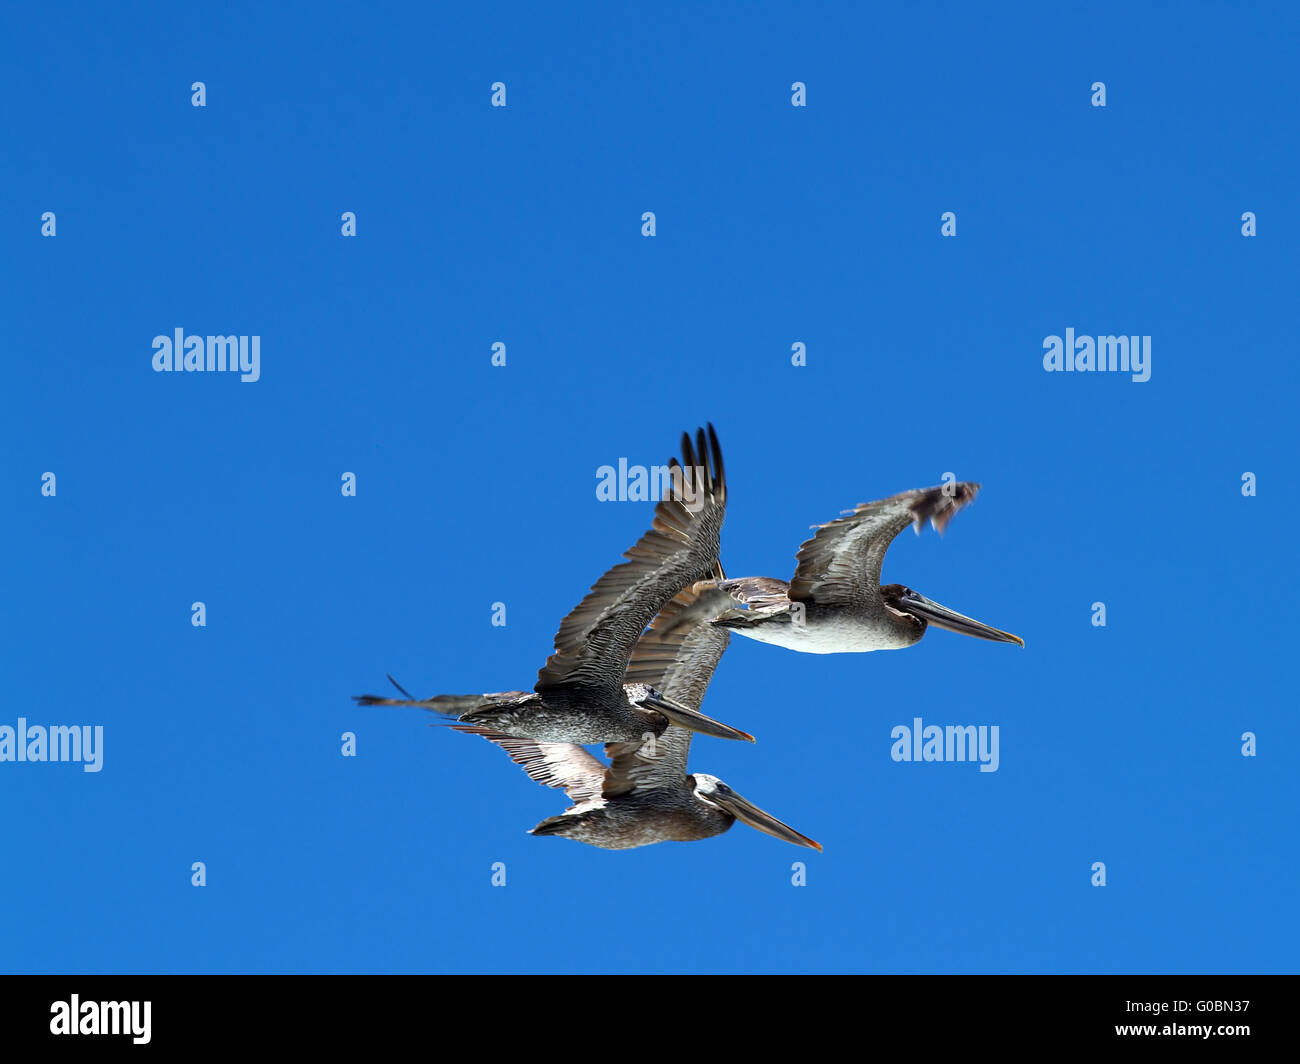 Three Pelicans In Flight Against Blue Sky - Stock Image